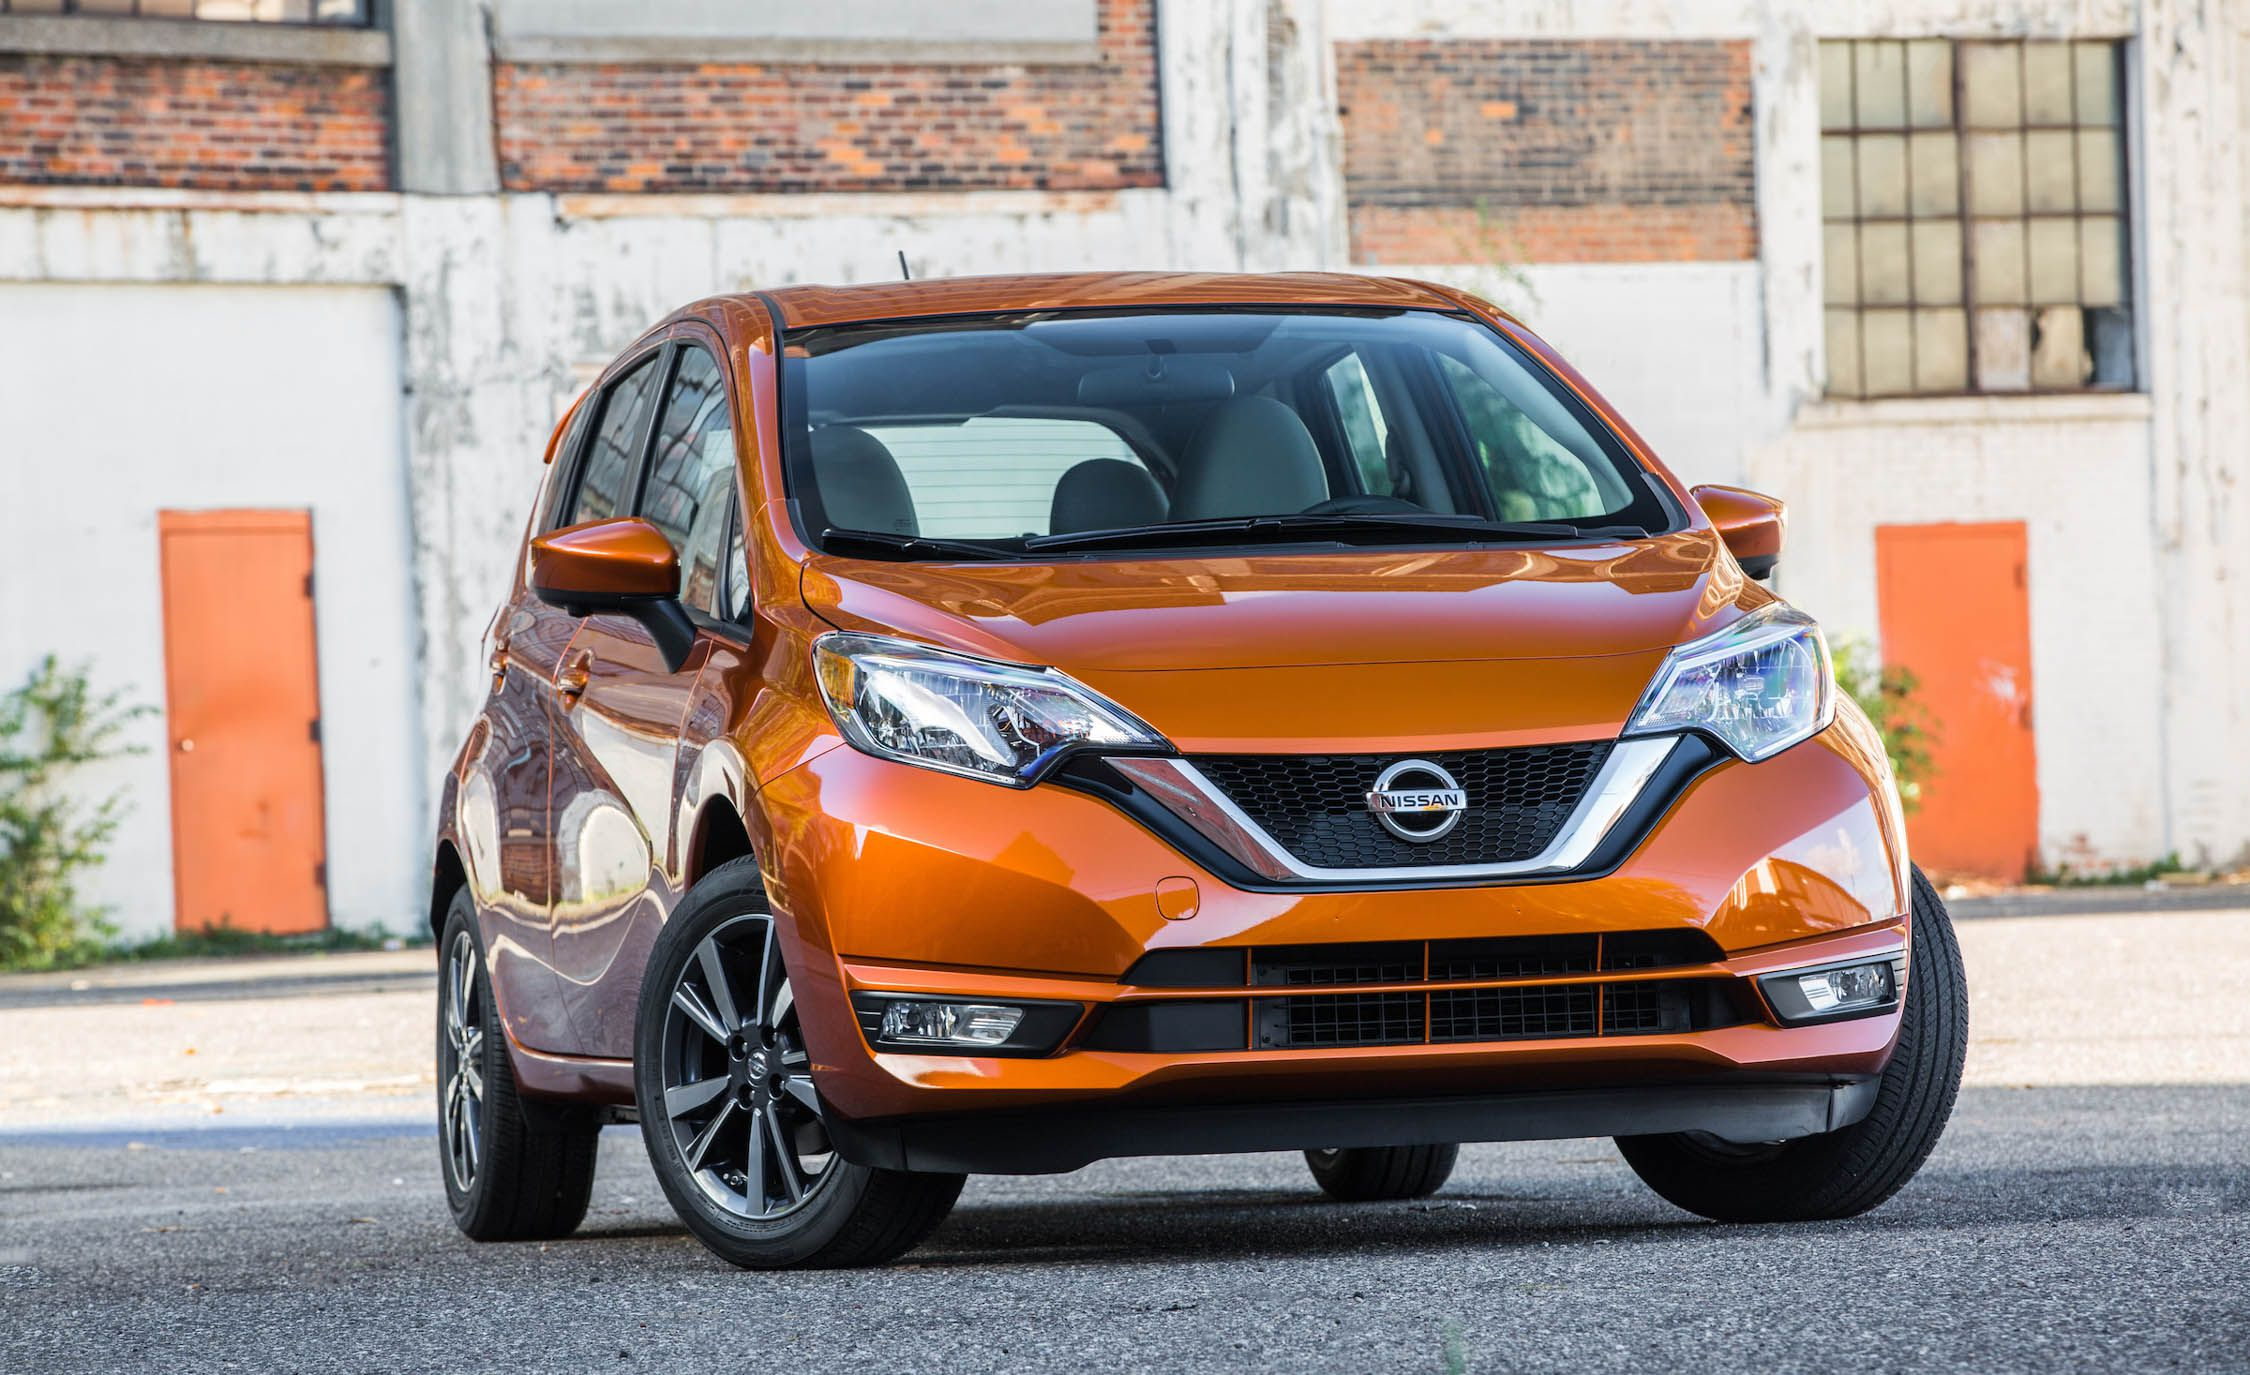 The current generation of the Nissan Note mini-hatchback/MPV came out in 2012 and received its mid-generational refresh in 2016. Two years later, the model ascended the Hall of Fame as a bestseller in Japan, which prompted Nissan to look into launching a new generation.